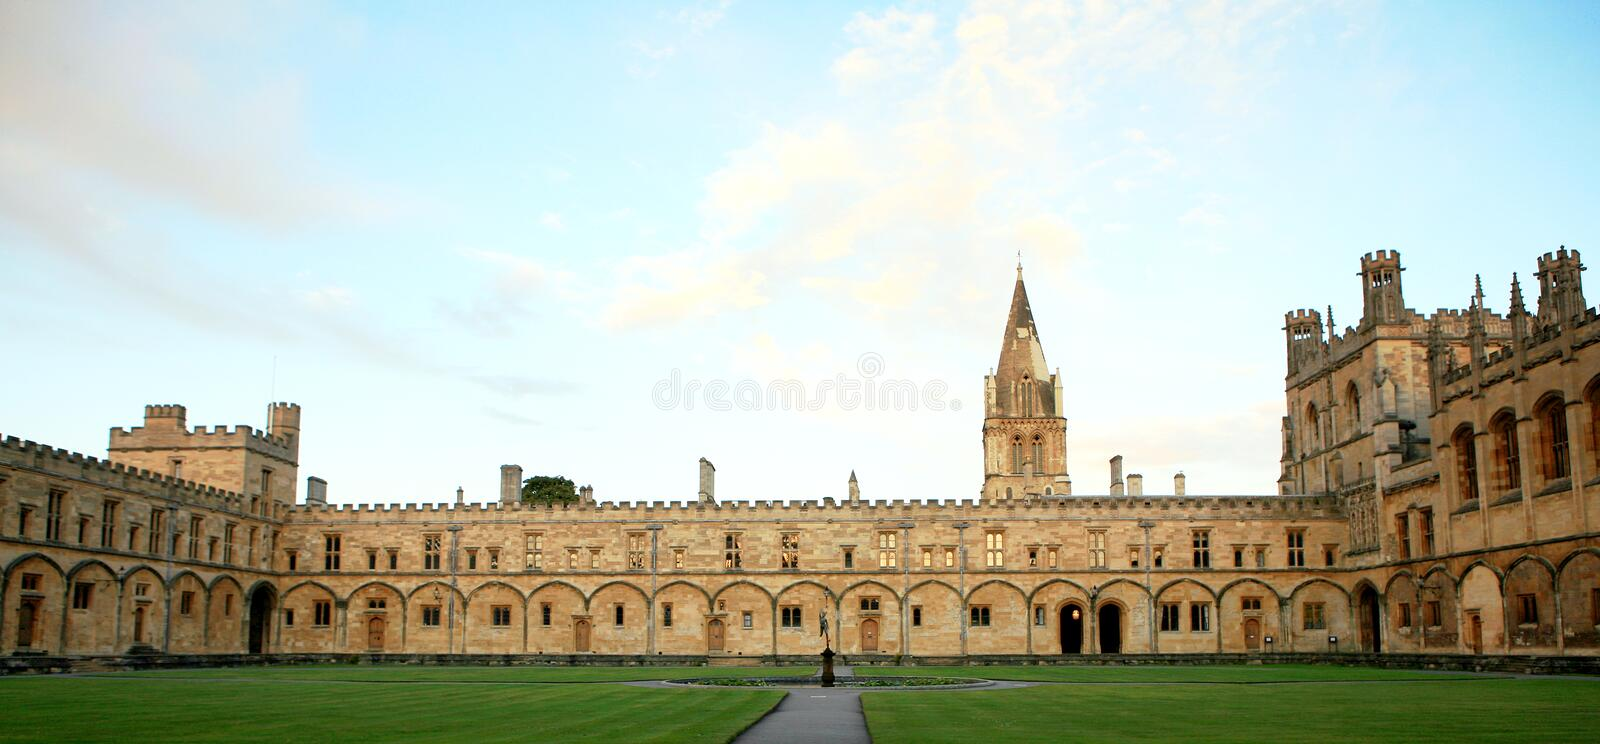 Christ Church College, Oxford Royalty Free Stock Images